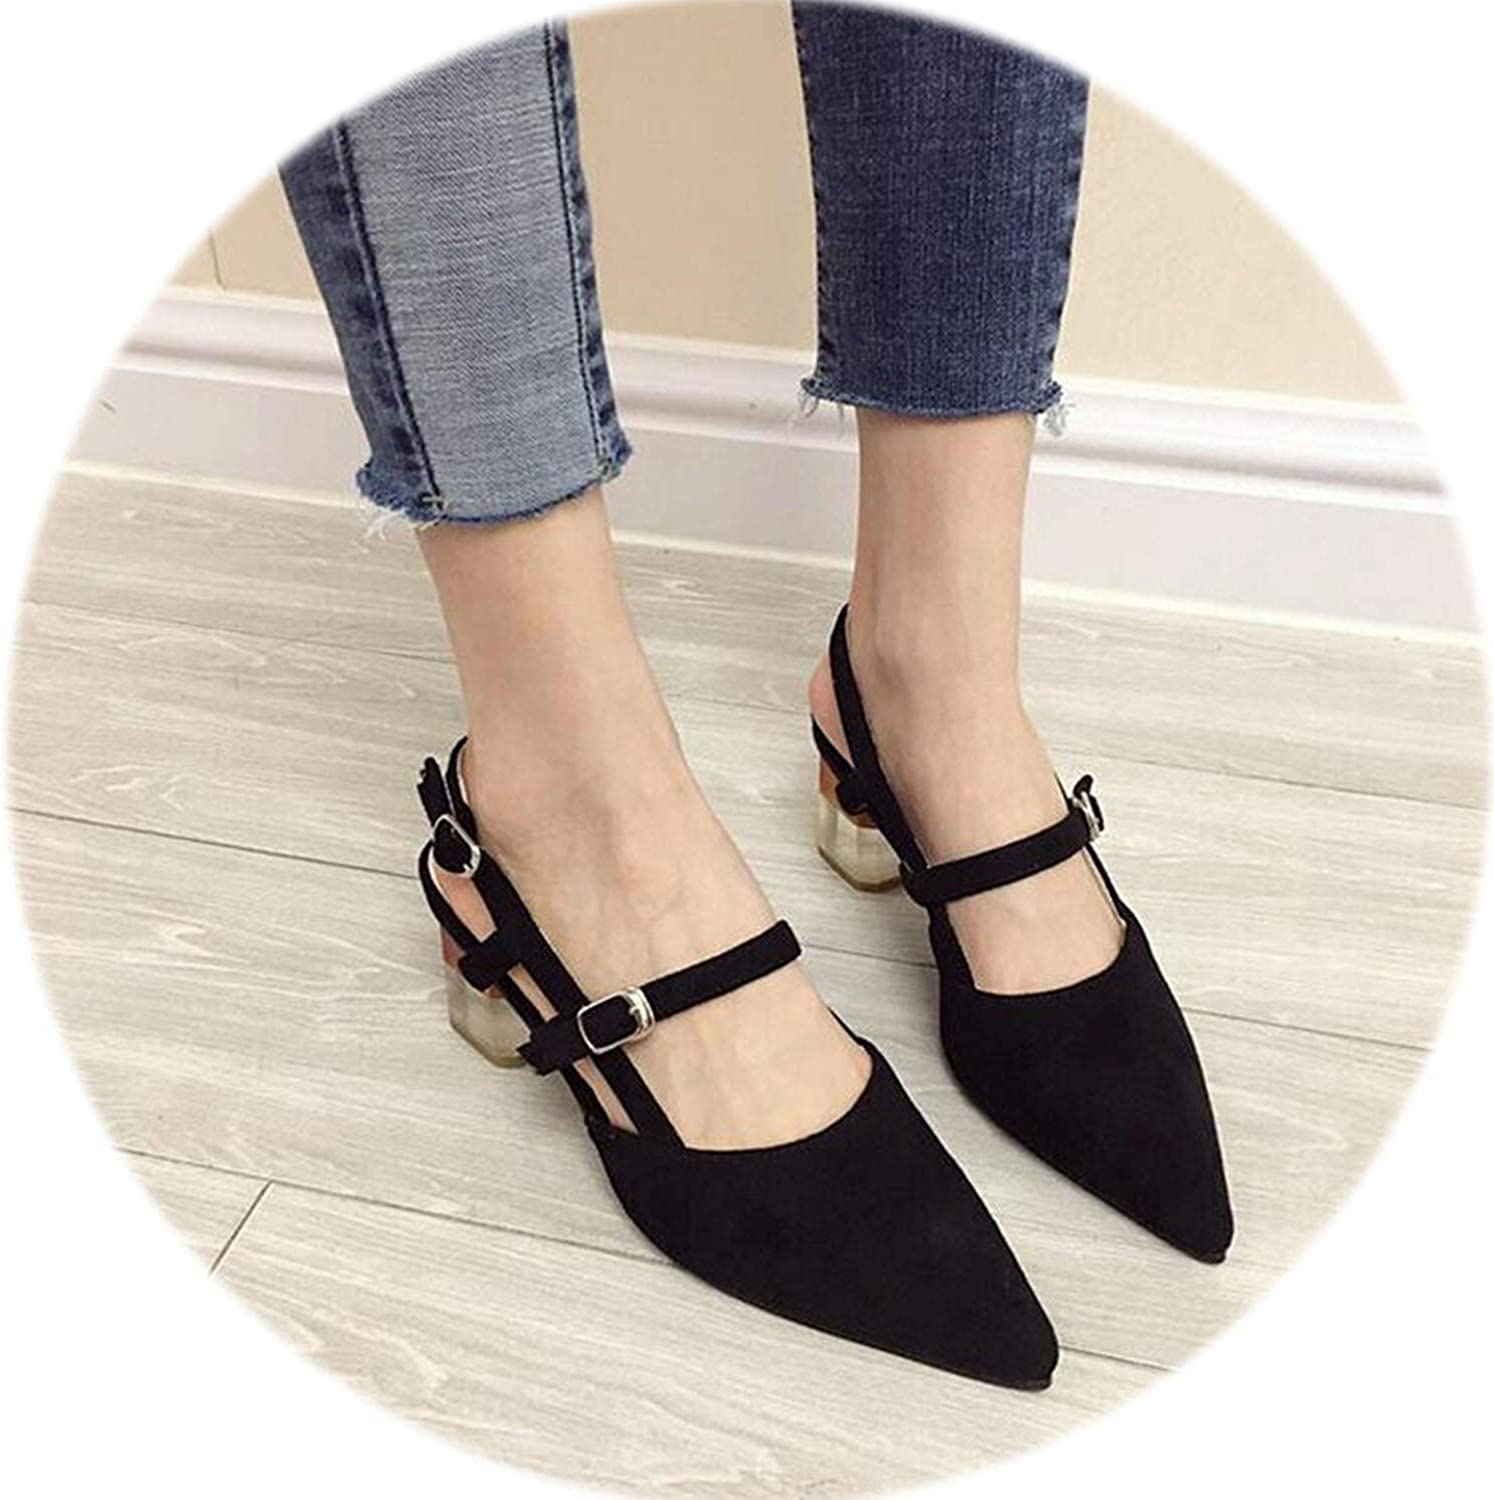 Gooding life Transparent Heel Women Pumps shoes Solid Flock Slingbacks Mules Women Sexy Pointed Toe High Heels